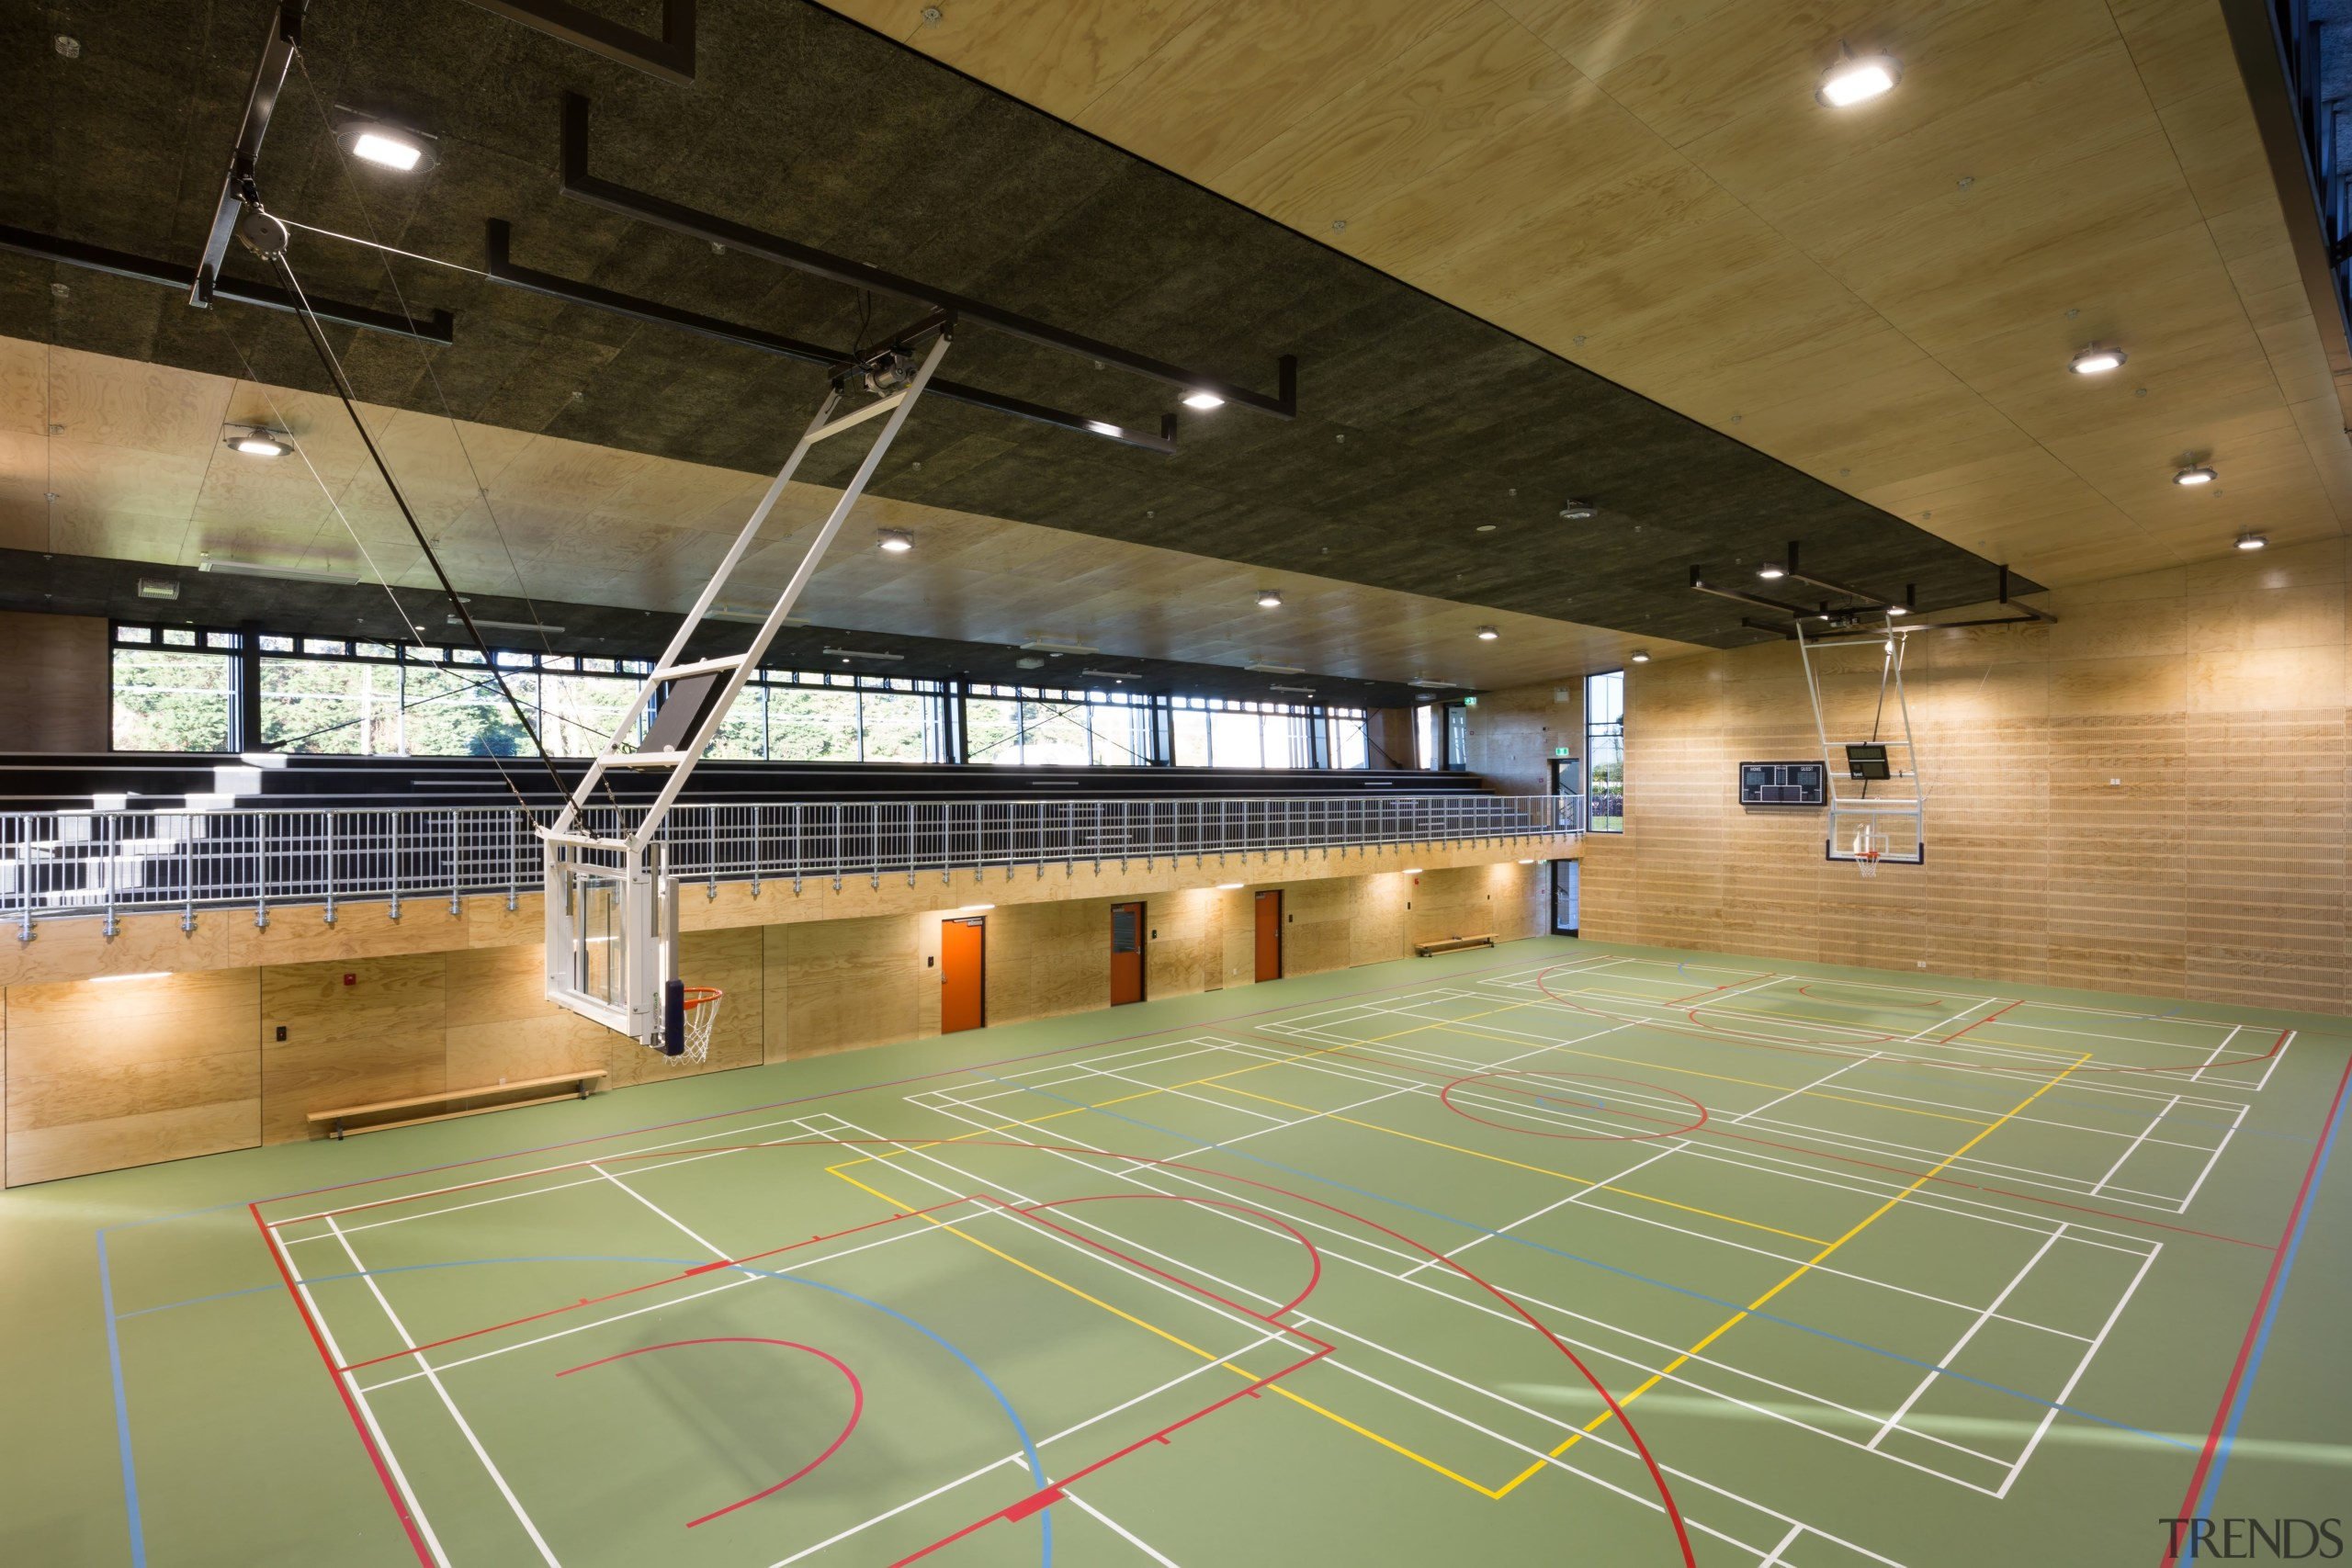 Acoustic ceiling panels keep noise under control in arena, basketball court, floor, hall, indoor games and sports, leisure, leisure centre, sport venue, sports, structure, brown